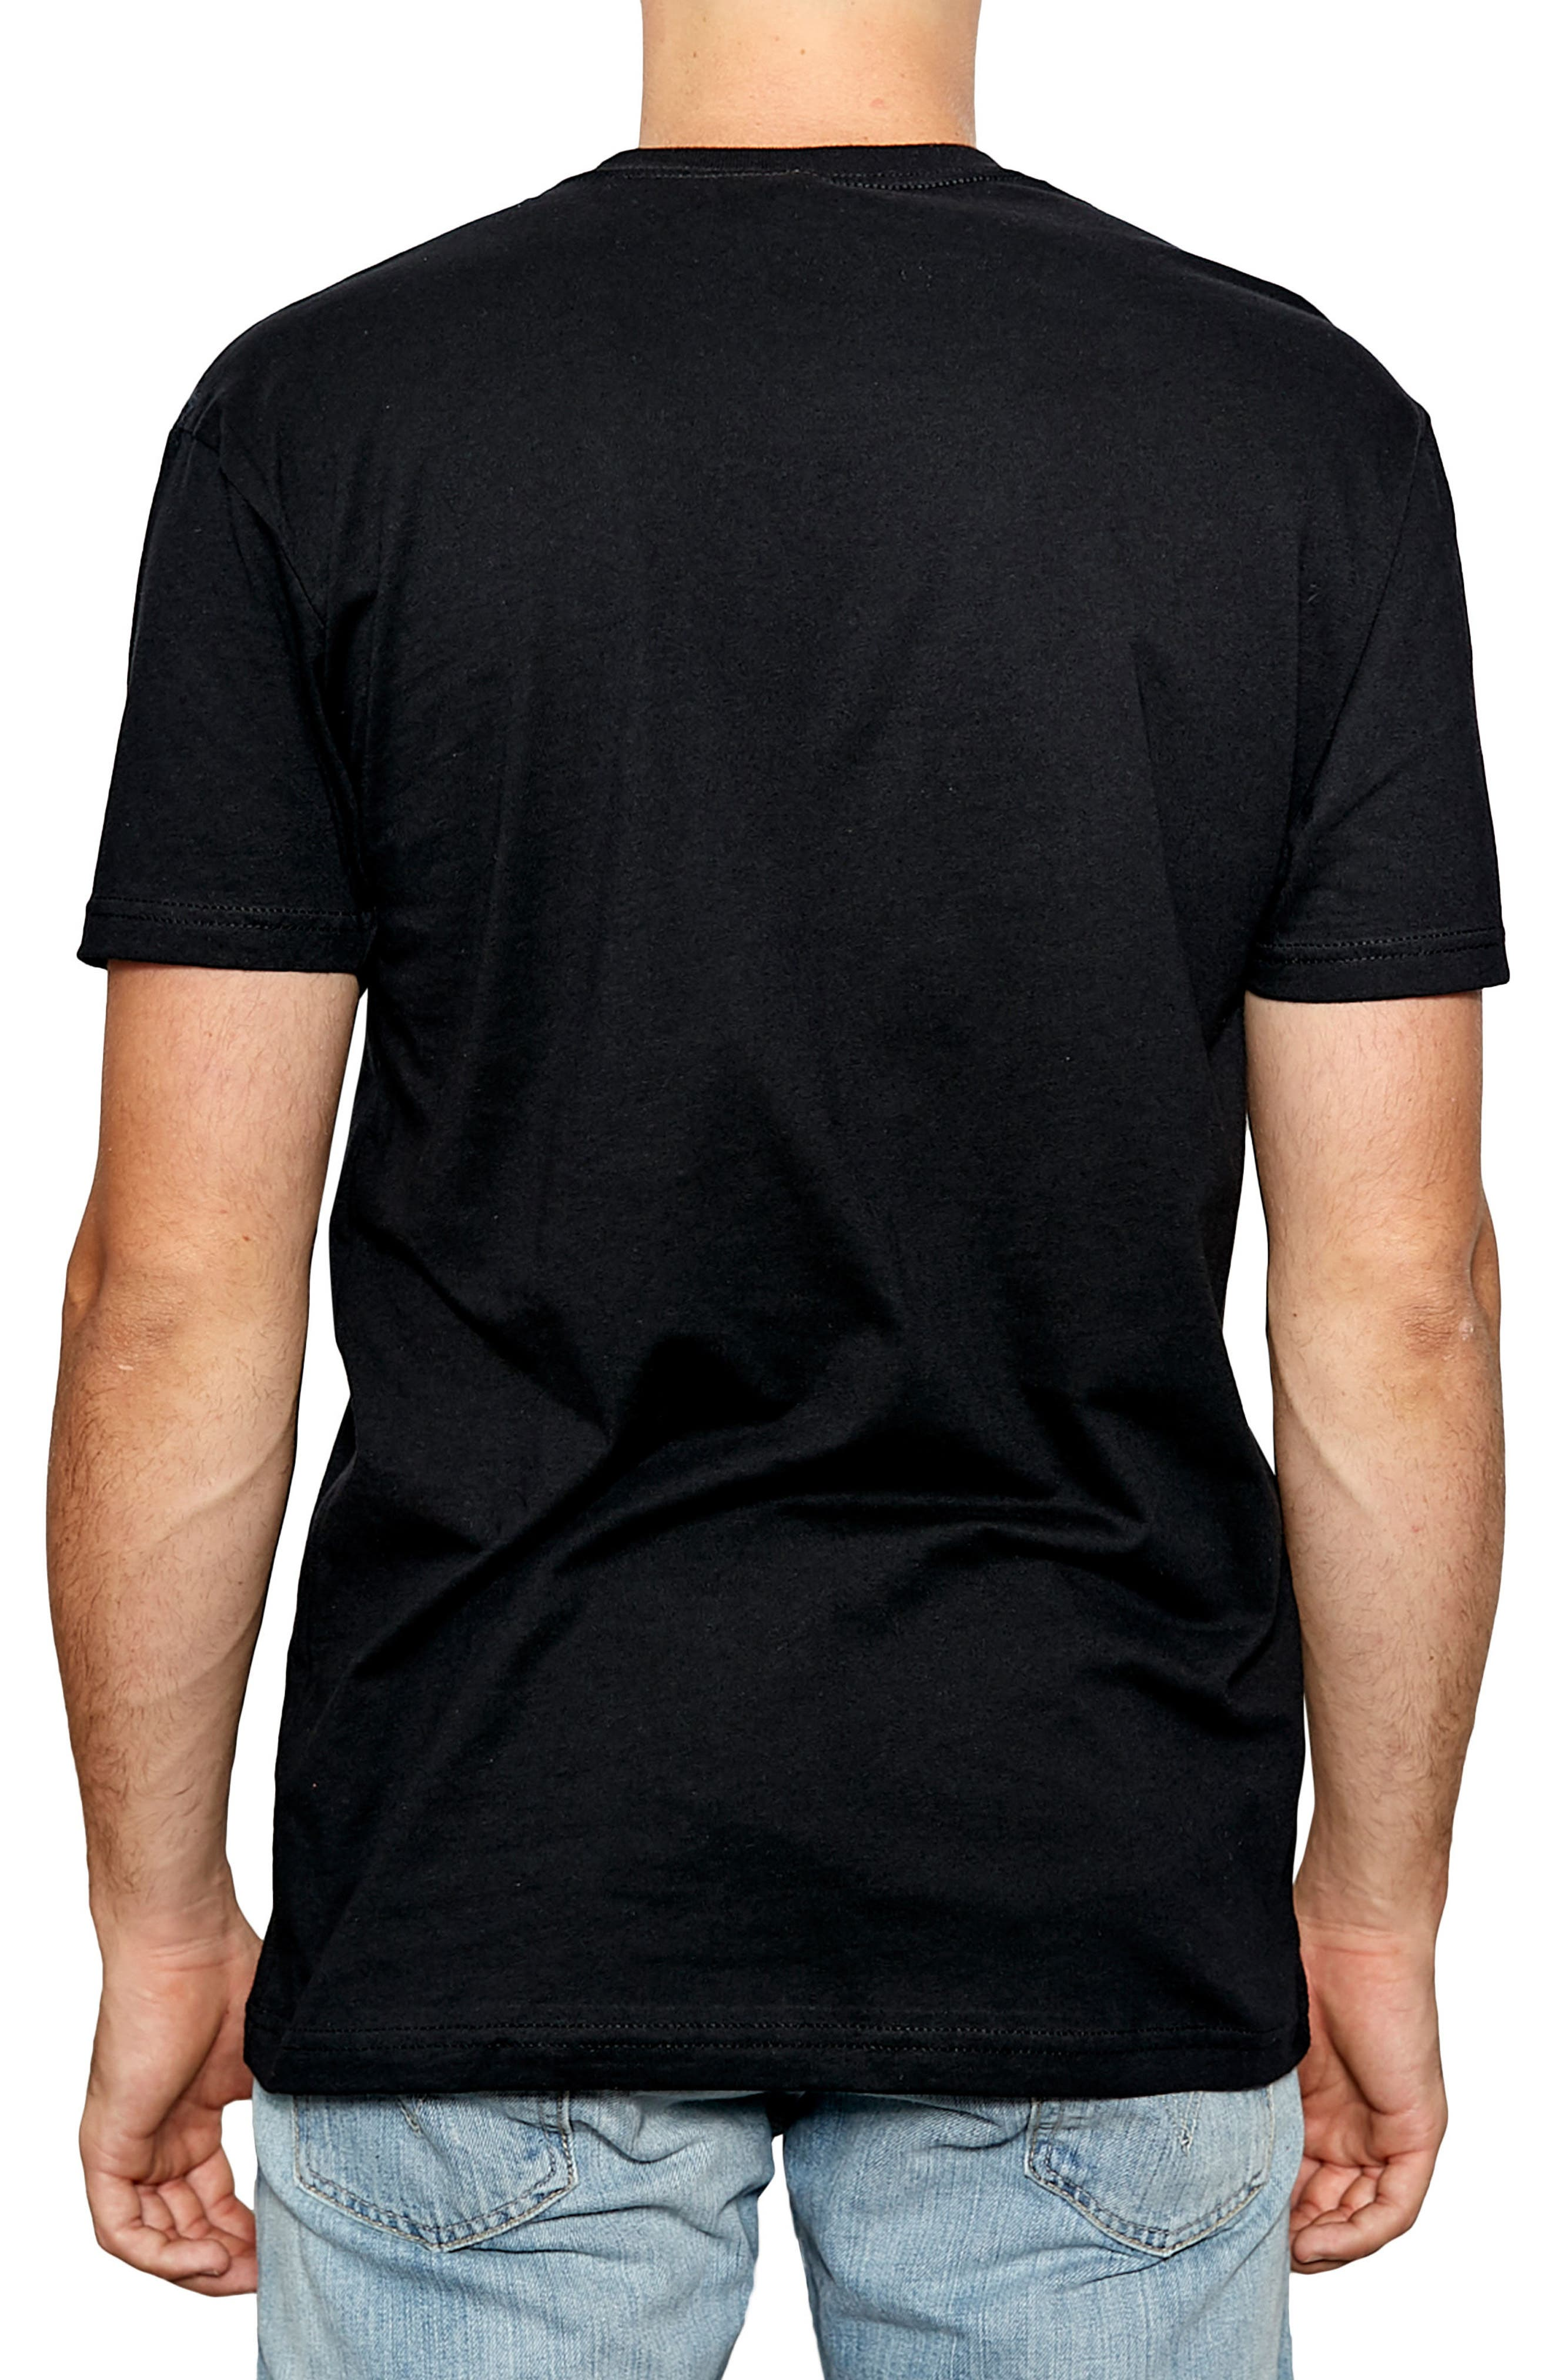 Out to Lunch Graphic T-Shirt,                             Alternate thumbnail 2, color,                             001